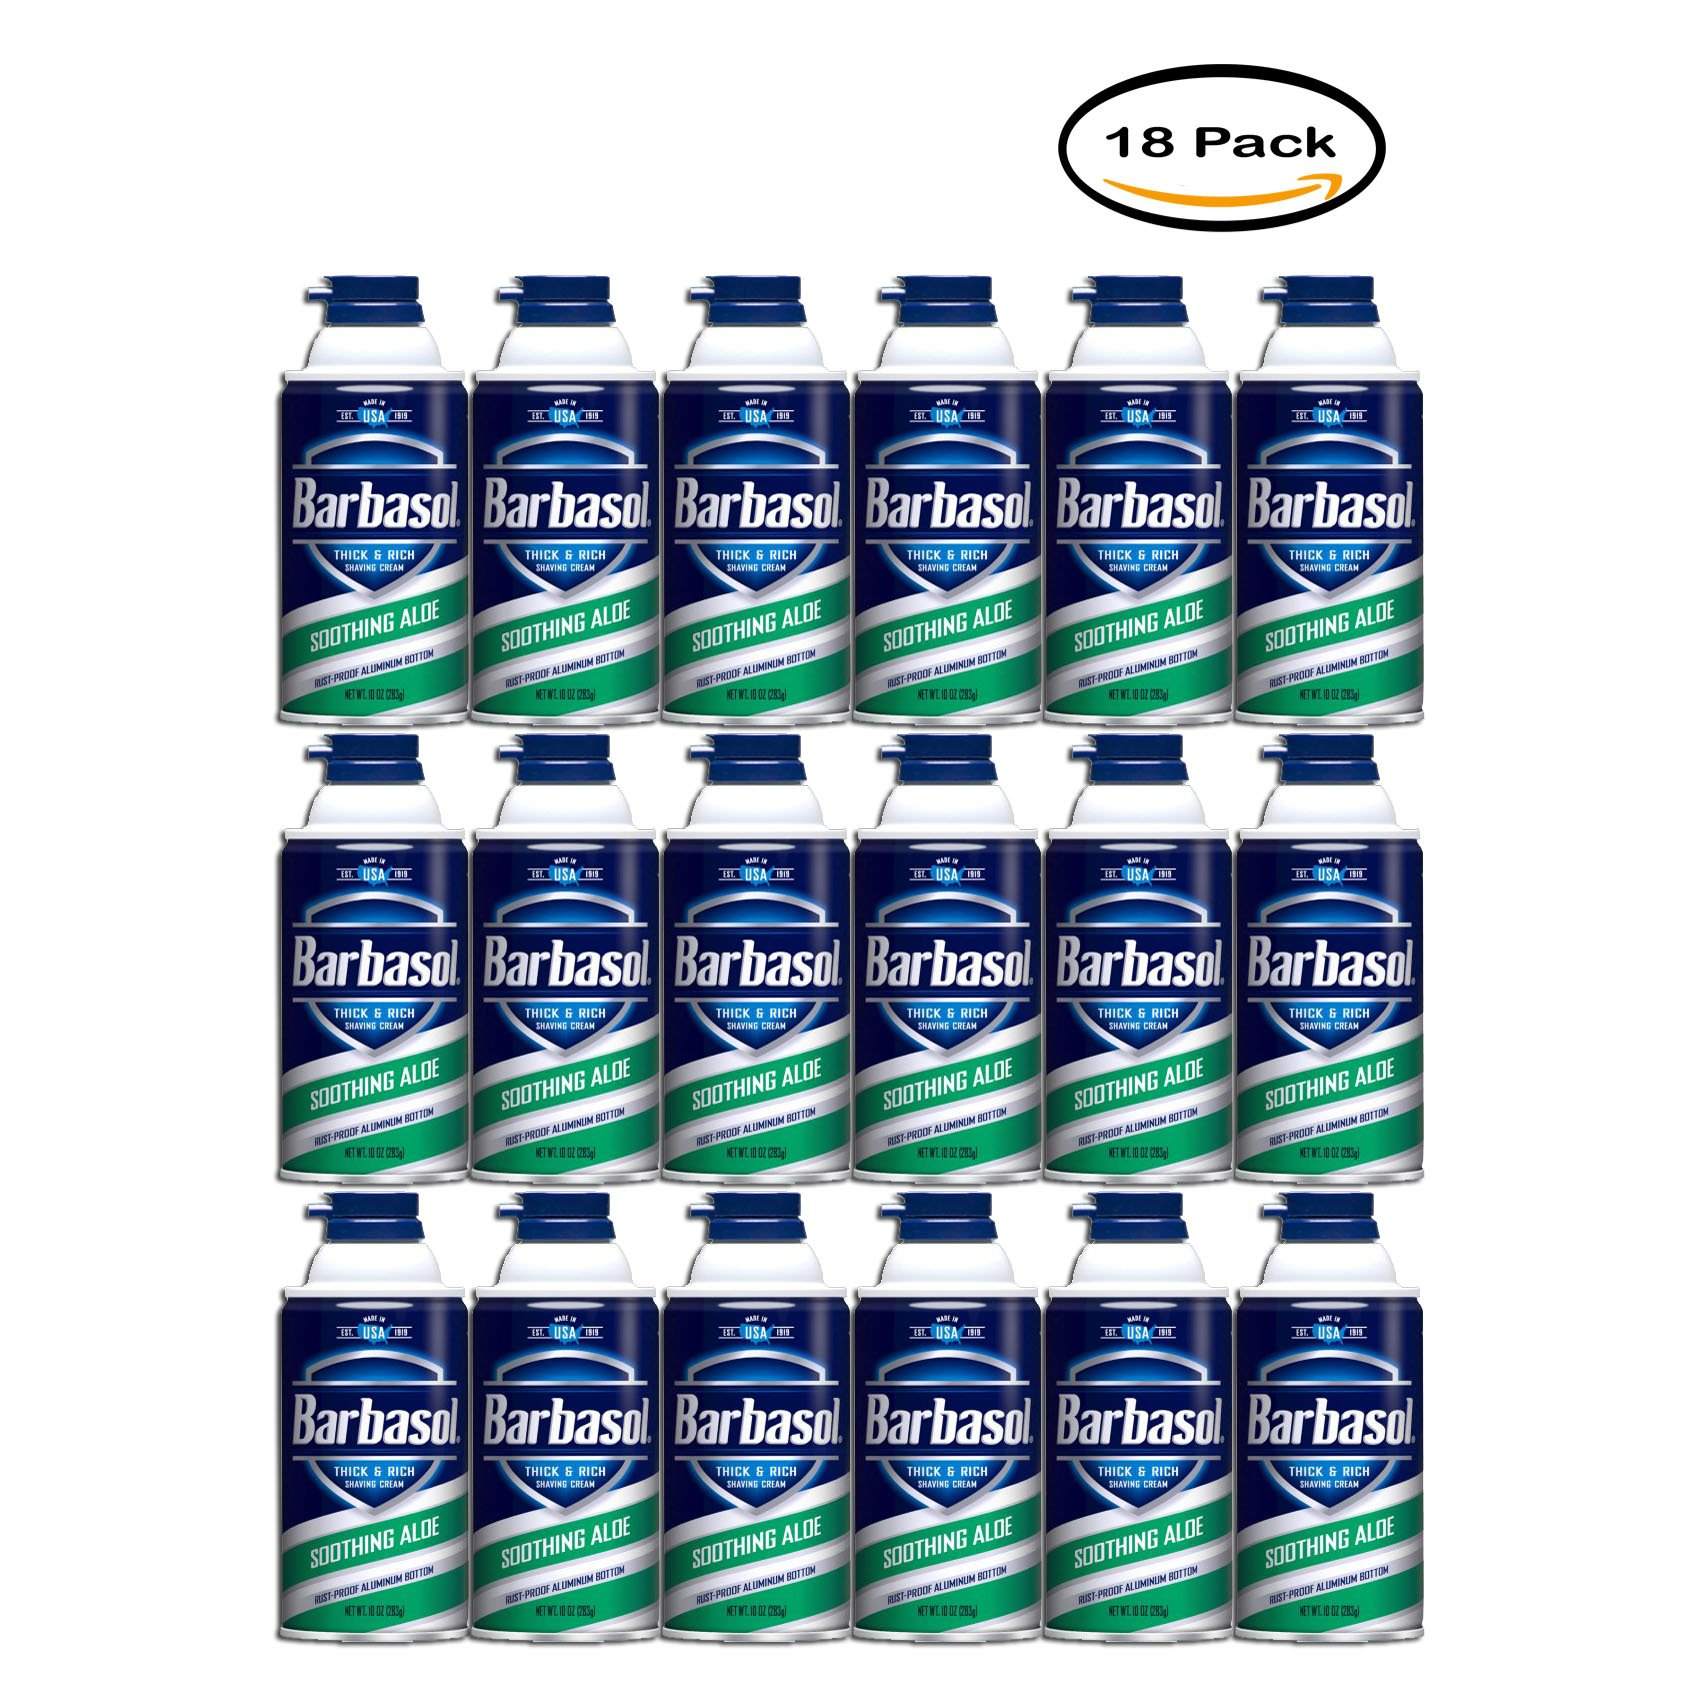 Pack of 18 - Barbasol Soothing Aloe Thick & Rich Shaving Cream for Men, 10 oz.